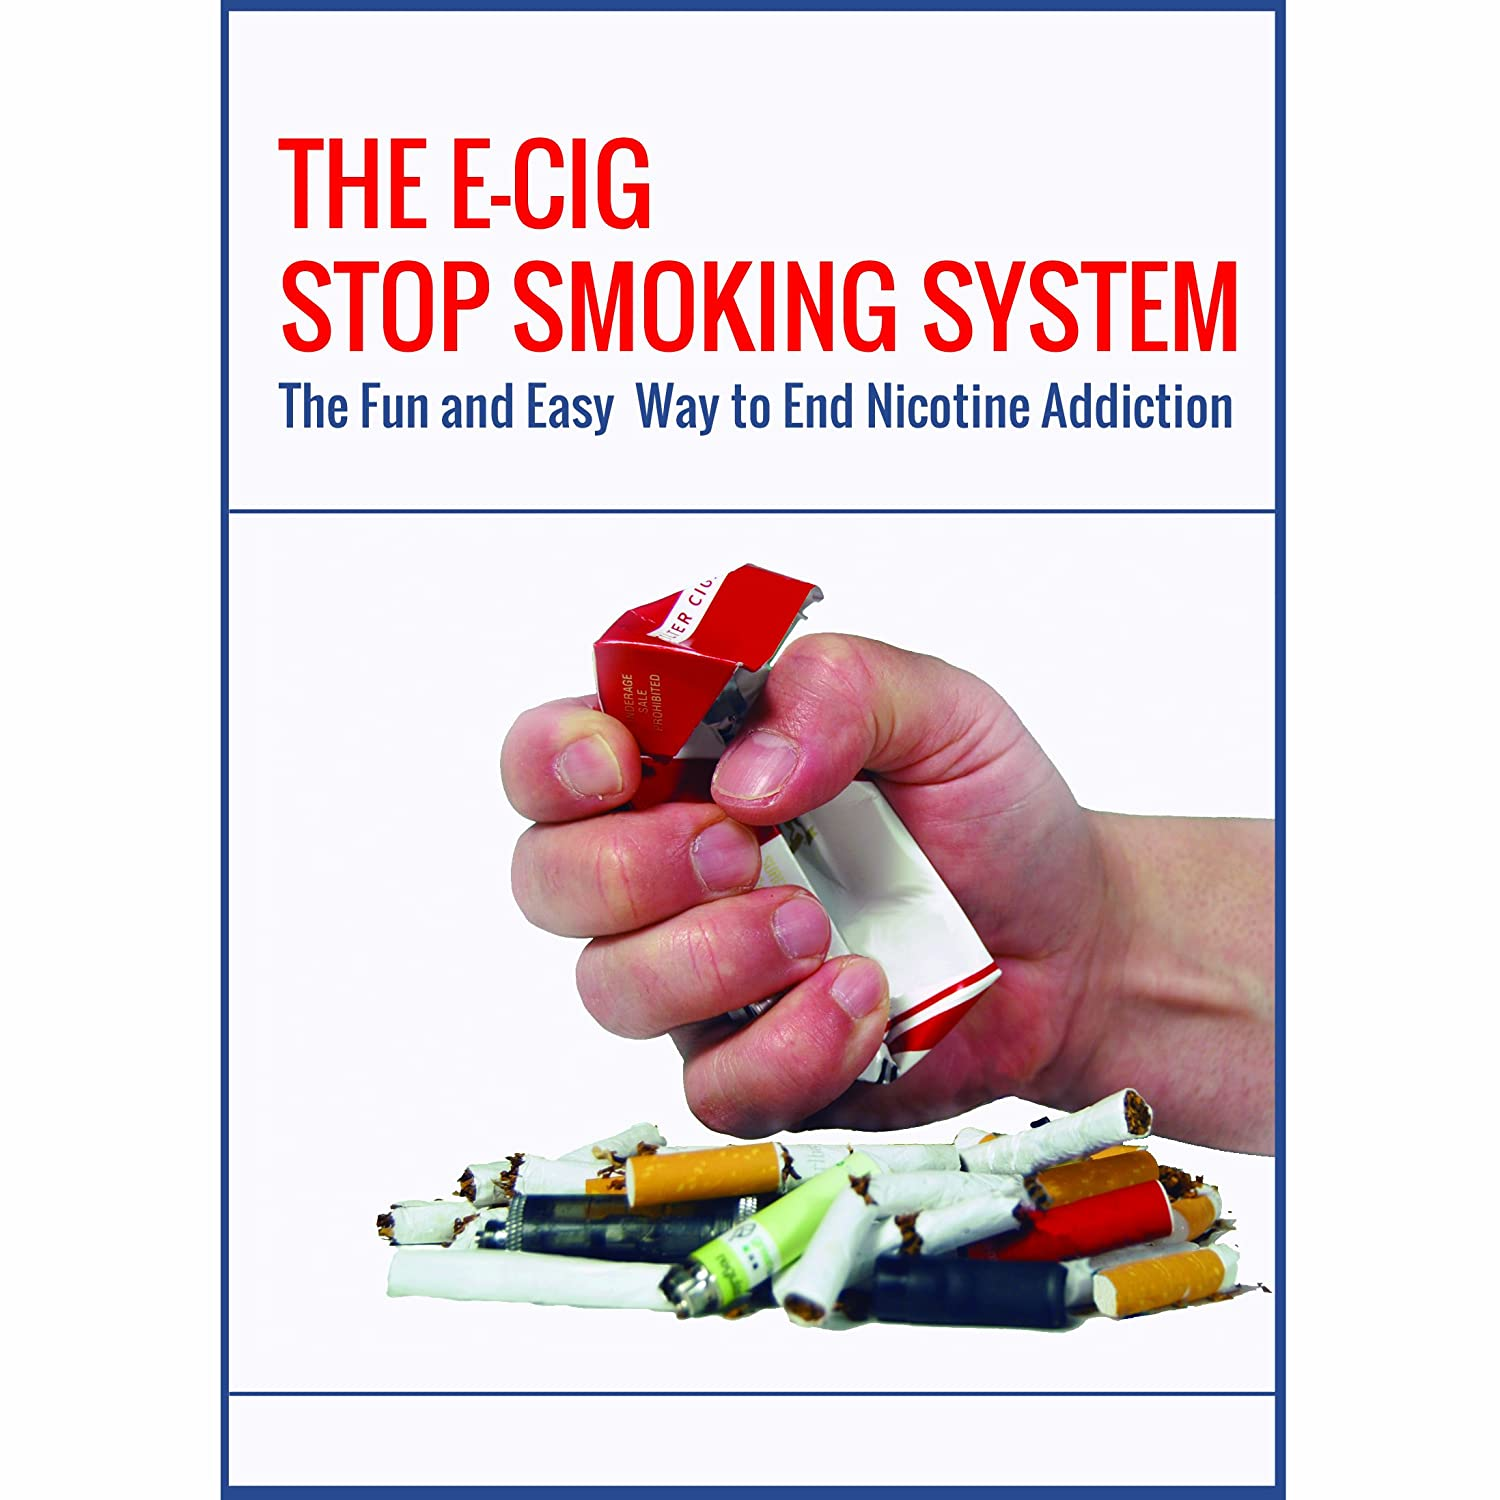 E cigarette to stop smoking buy cheap cigarettes online in uk